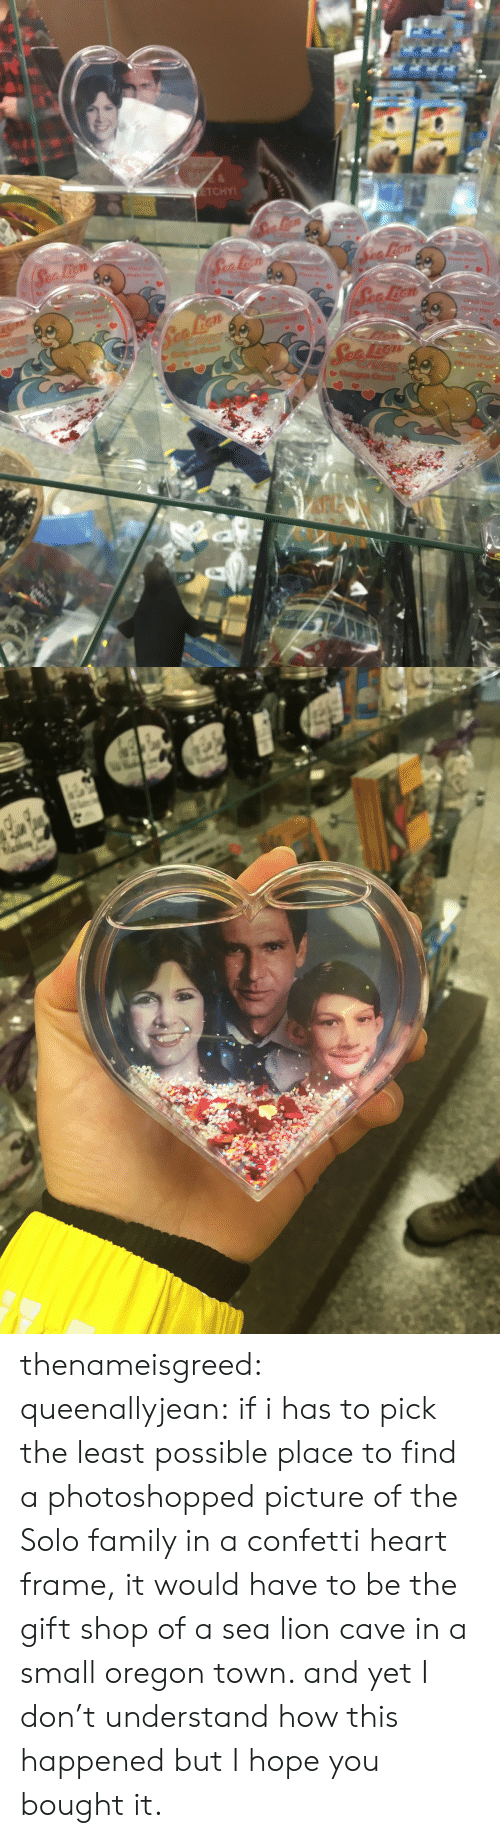 Family, Tumblr, and Blog: 7t  Her thenameisgreed:  queenallyjean: if i has to pick the least possible place to find a photoshopped picture of the Solo family in a confetti heart frame, it would have to be the gift shop of a sea lion cave in a small oregon town. and yet I don't understand how this happened but I hope you bought it.